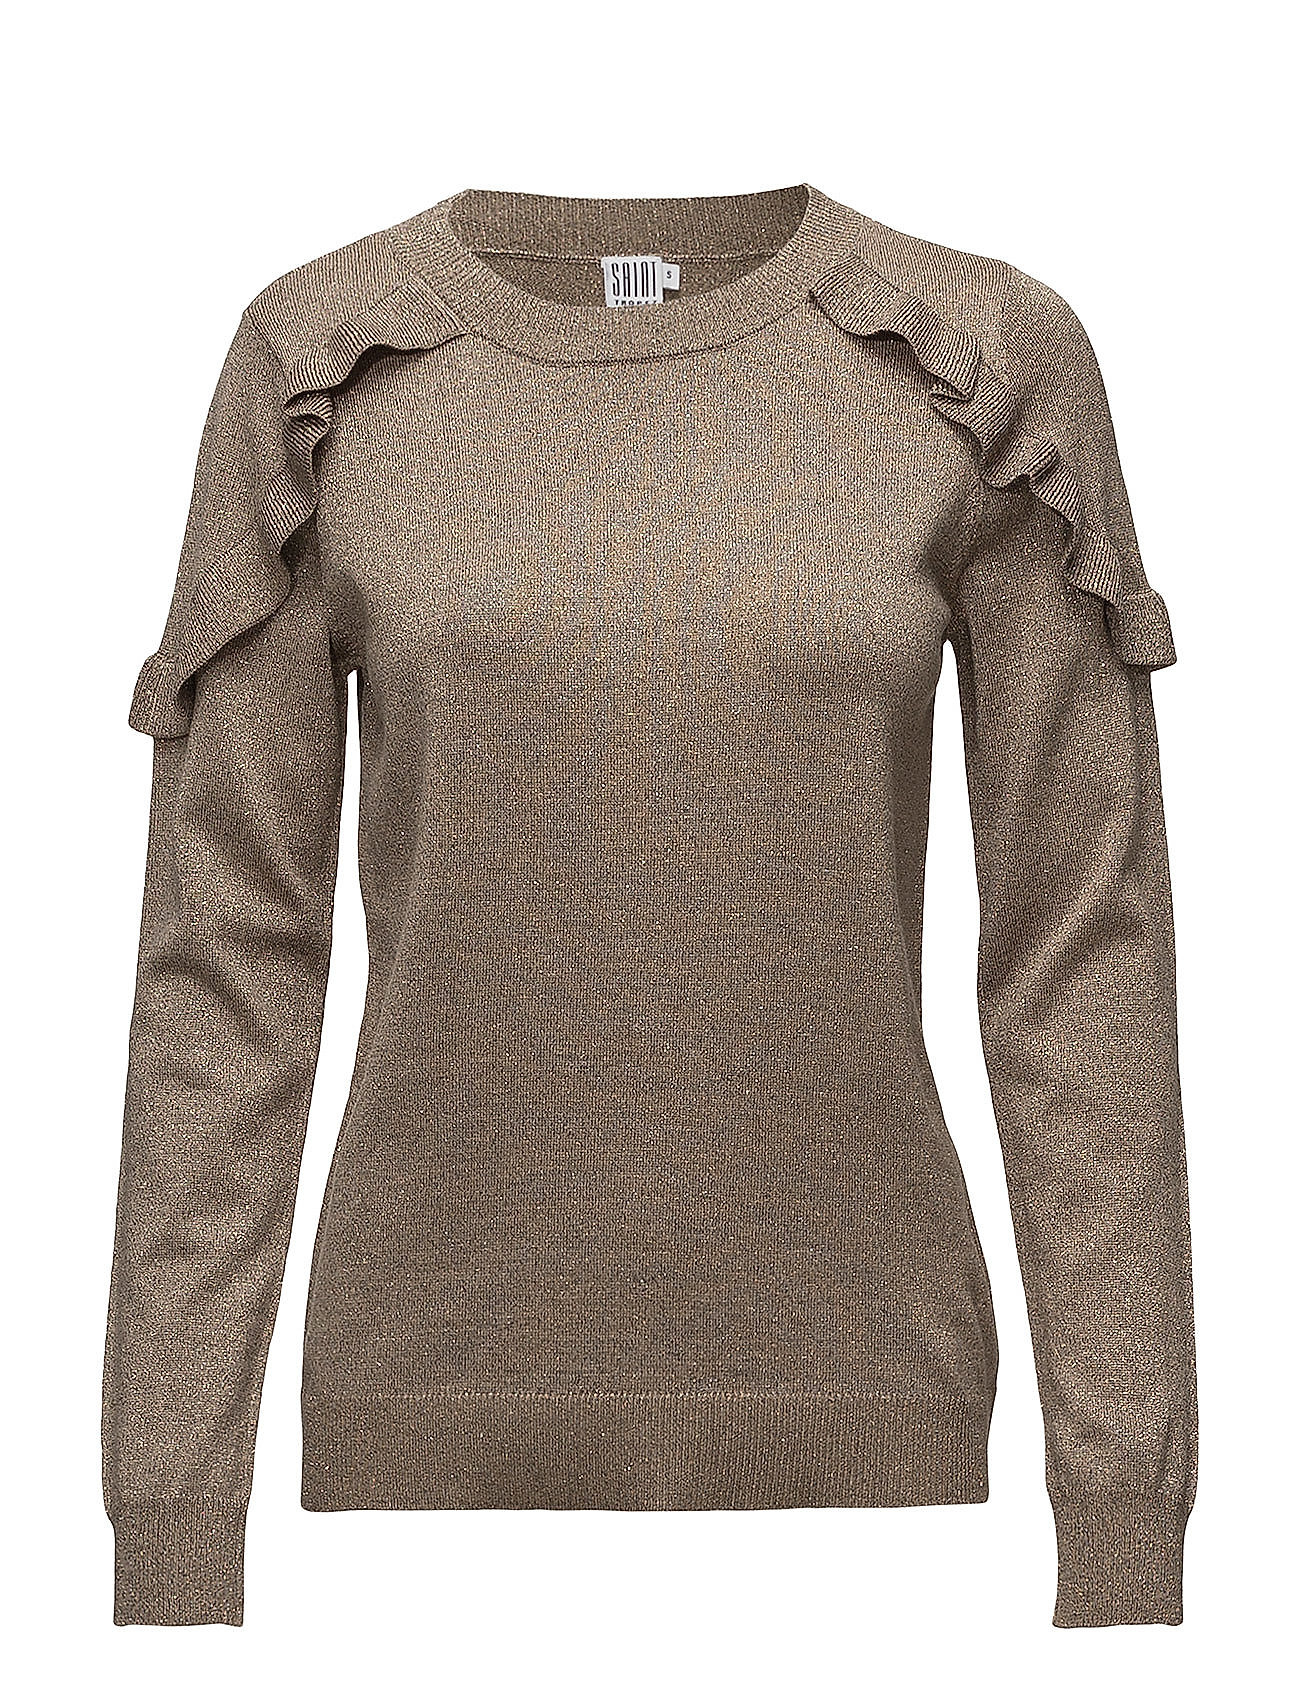 Saint Tropez GLITTER SWEATER WITH RUFFLES